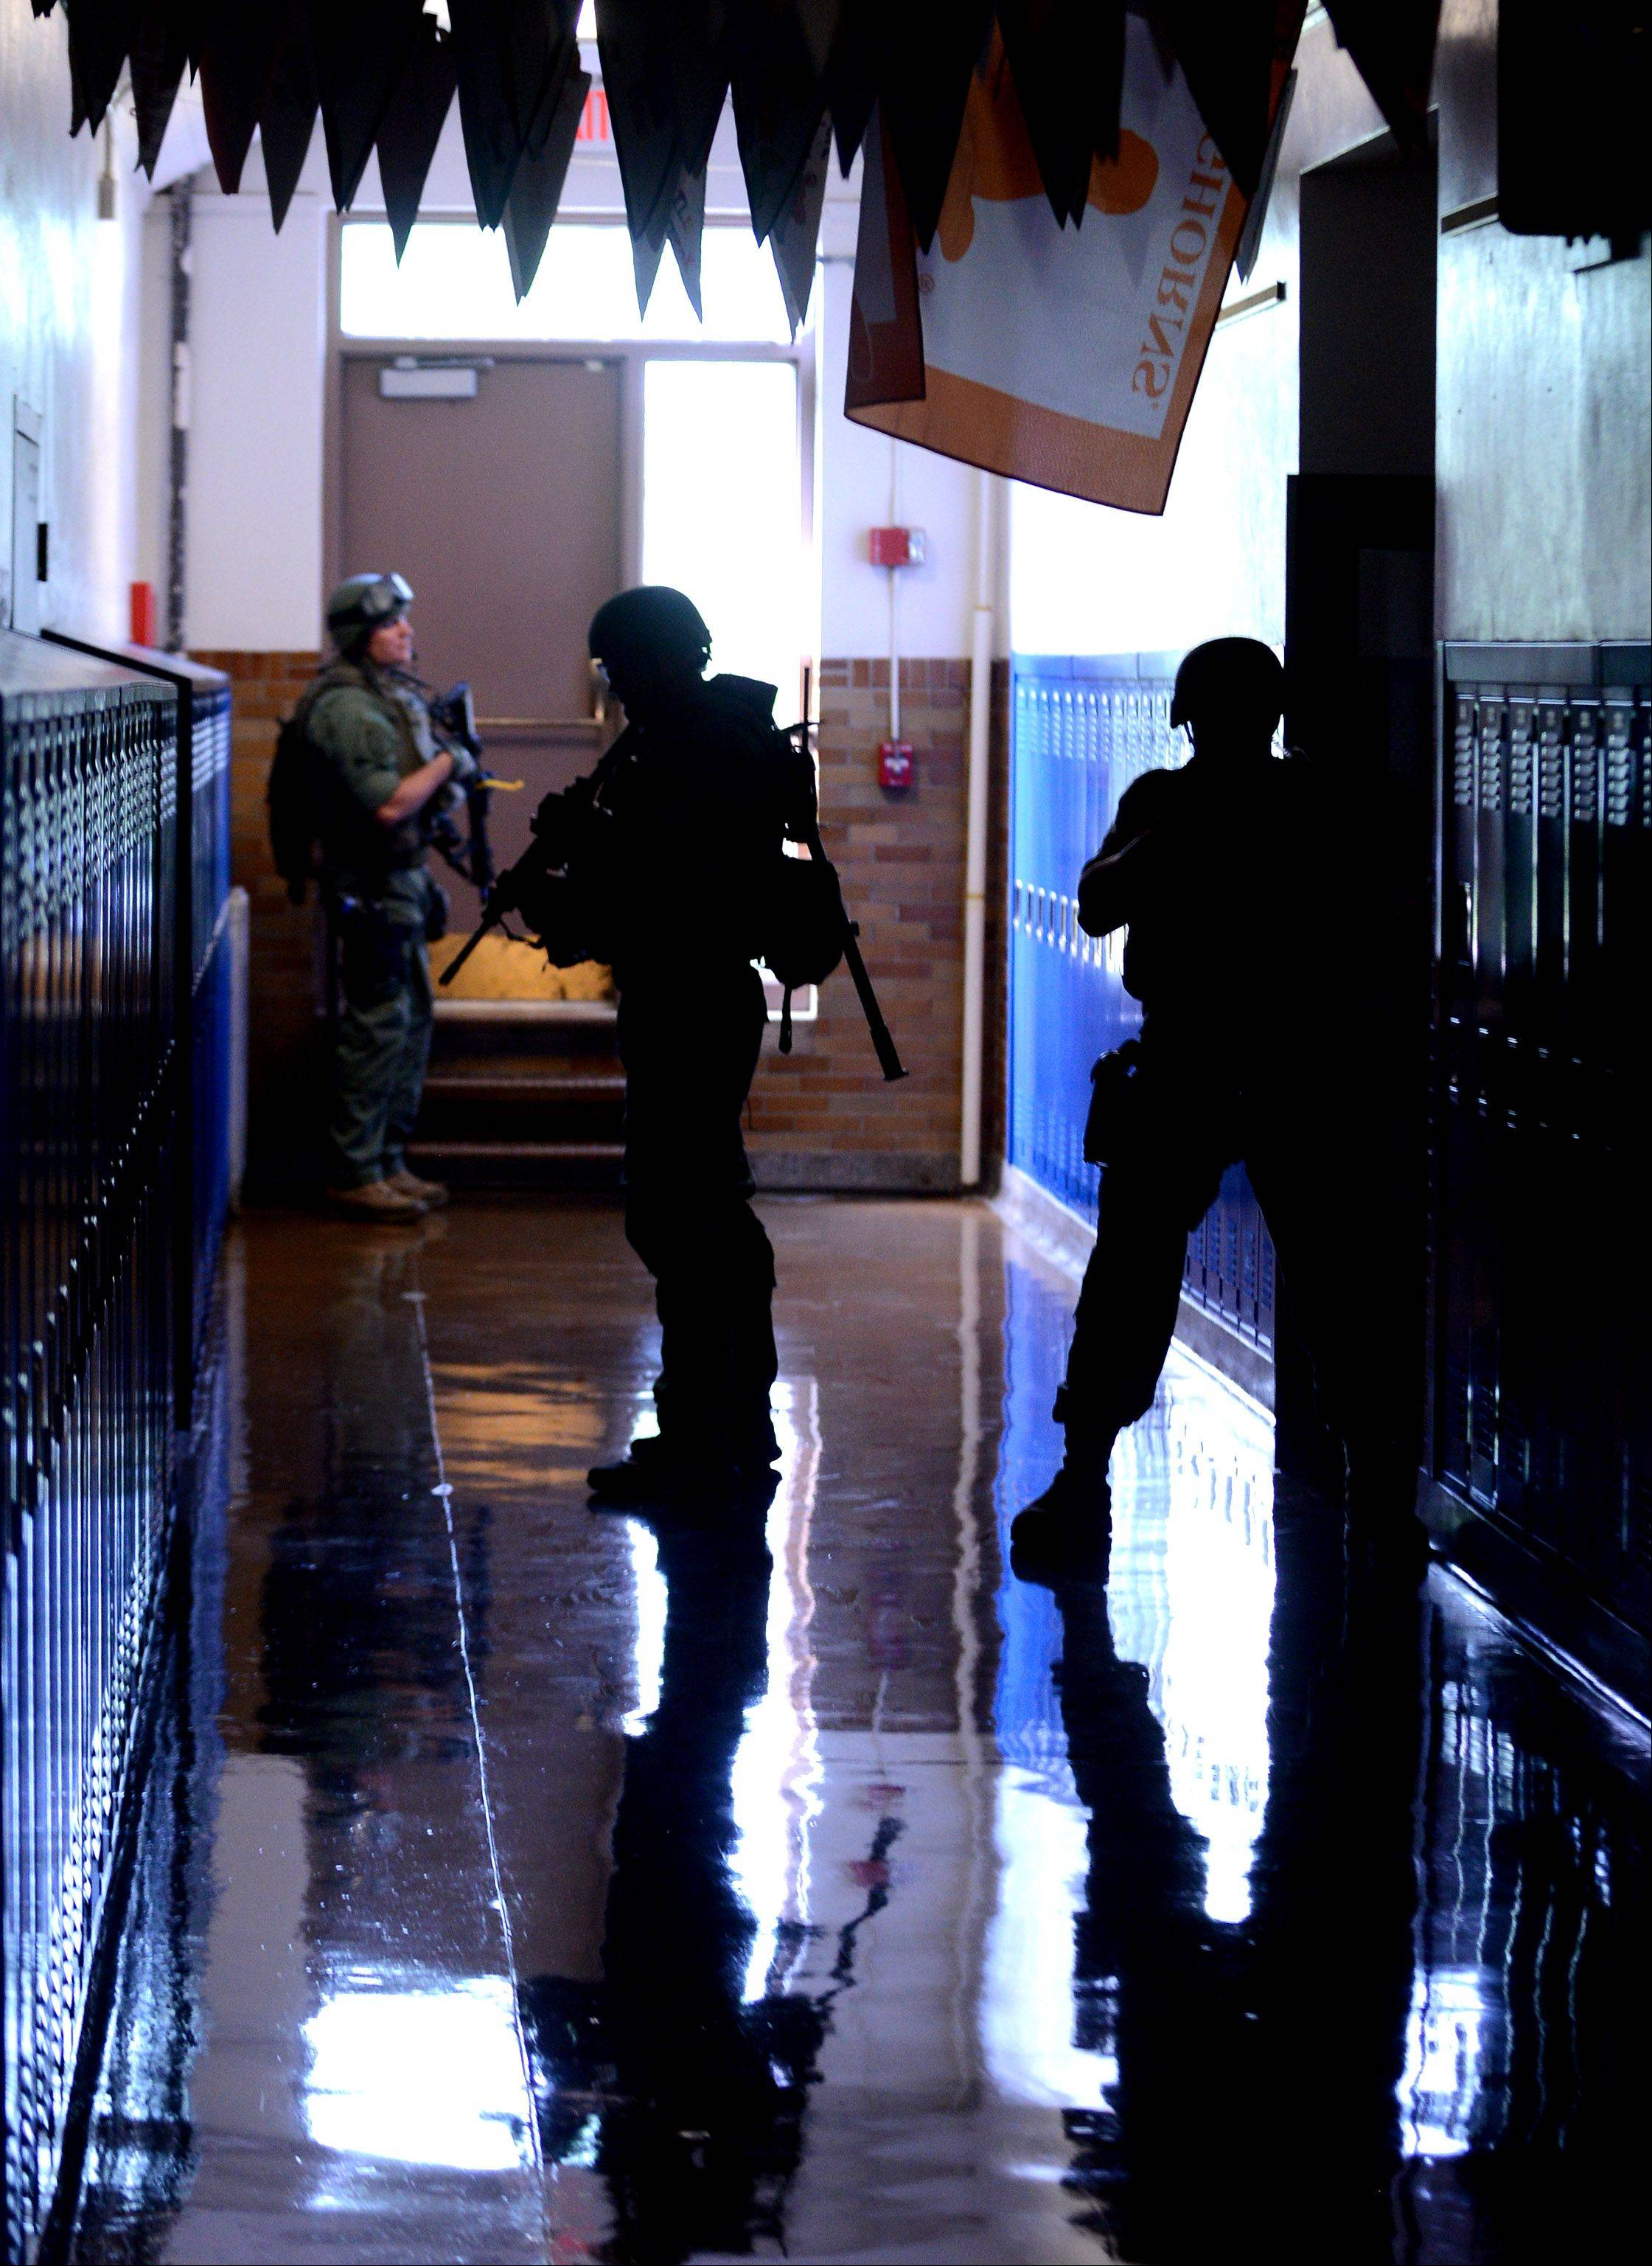 Elgin Police SWAT members do a room by room sweep during a security exercise involving a simulated shooting Tuesday at Abbott Middle School.